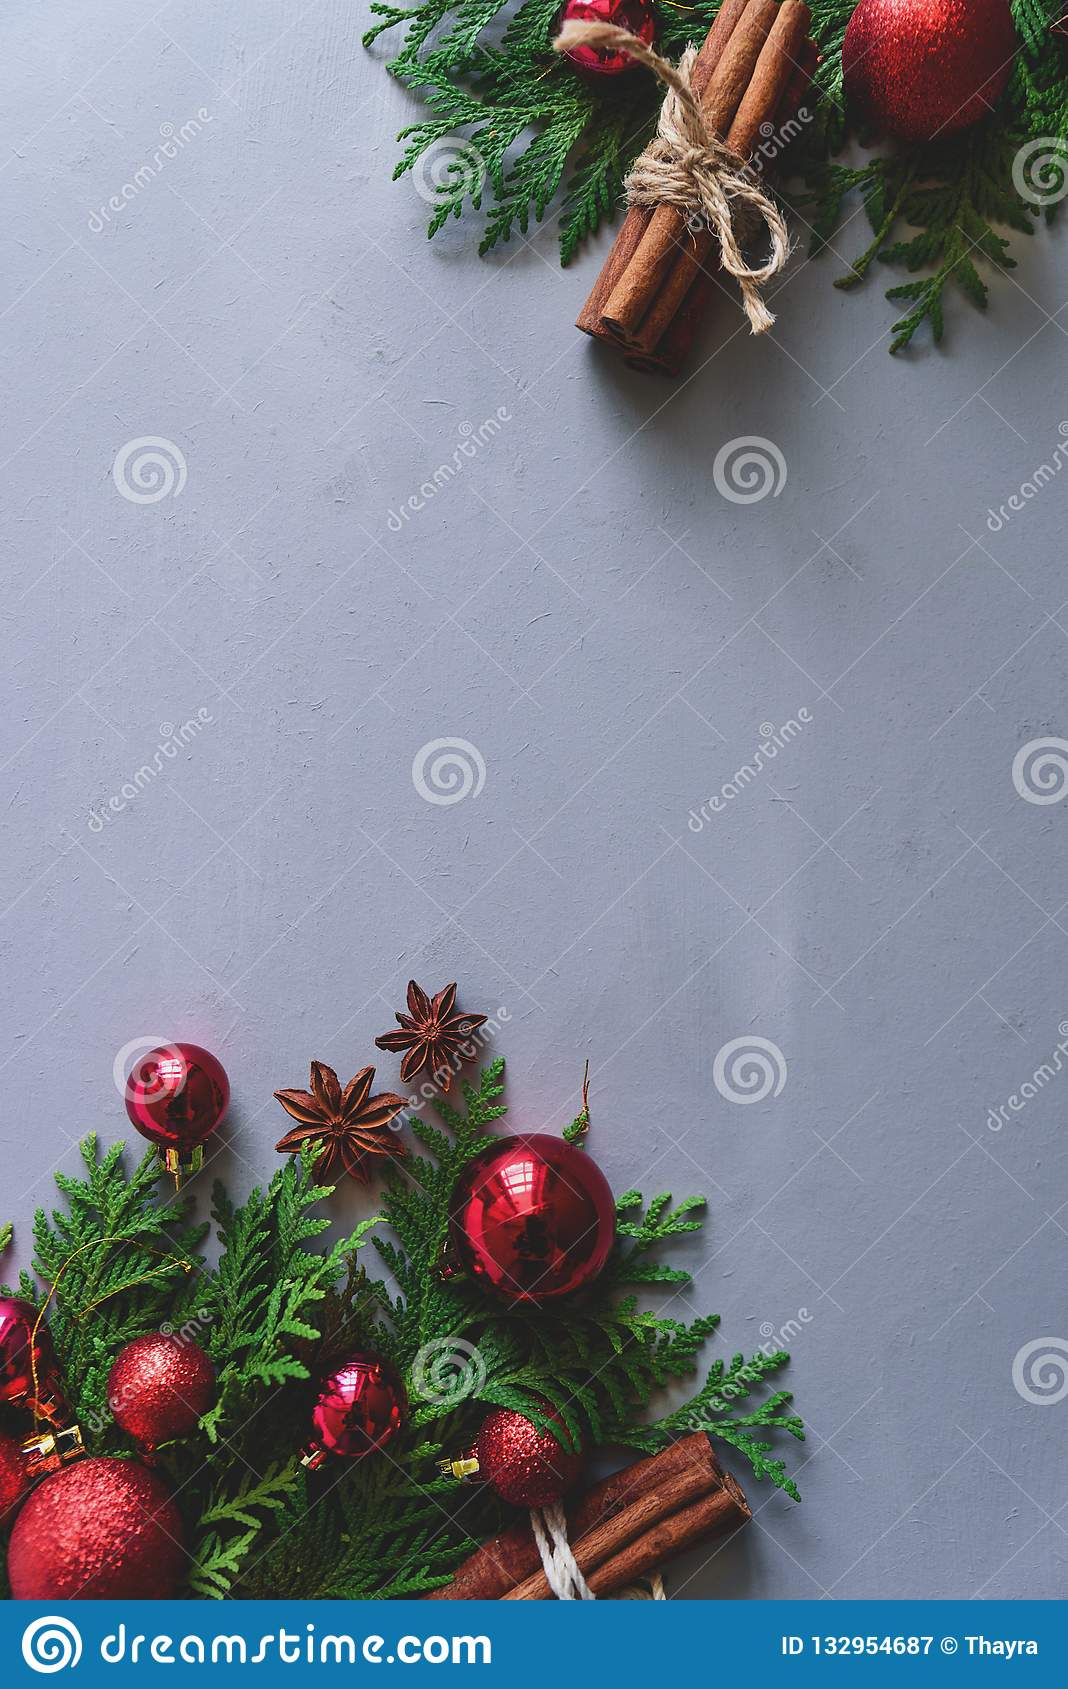 Christmas composition. Christmas fir tree branches, balls, cinnamon sticks and anise stars on gray wooden background. Flat lay.